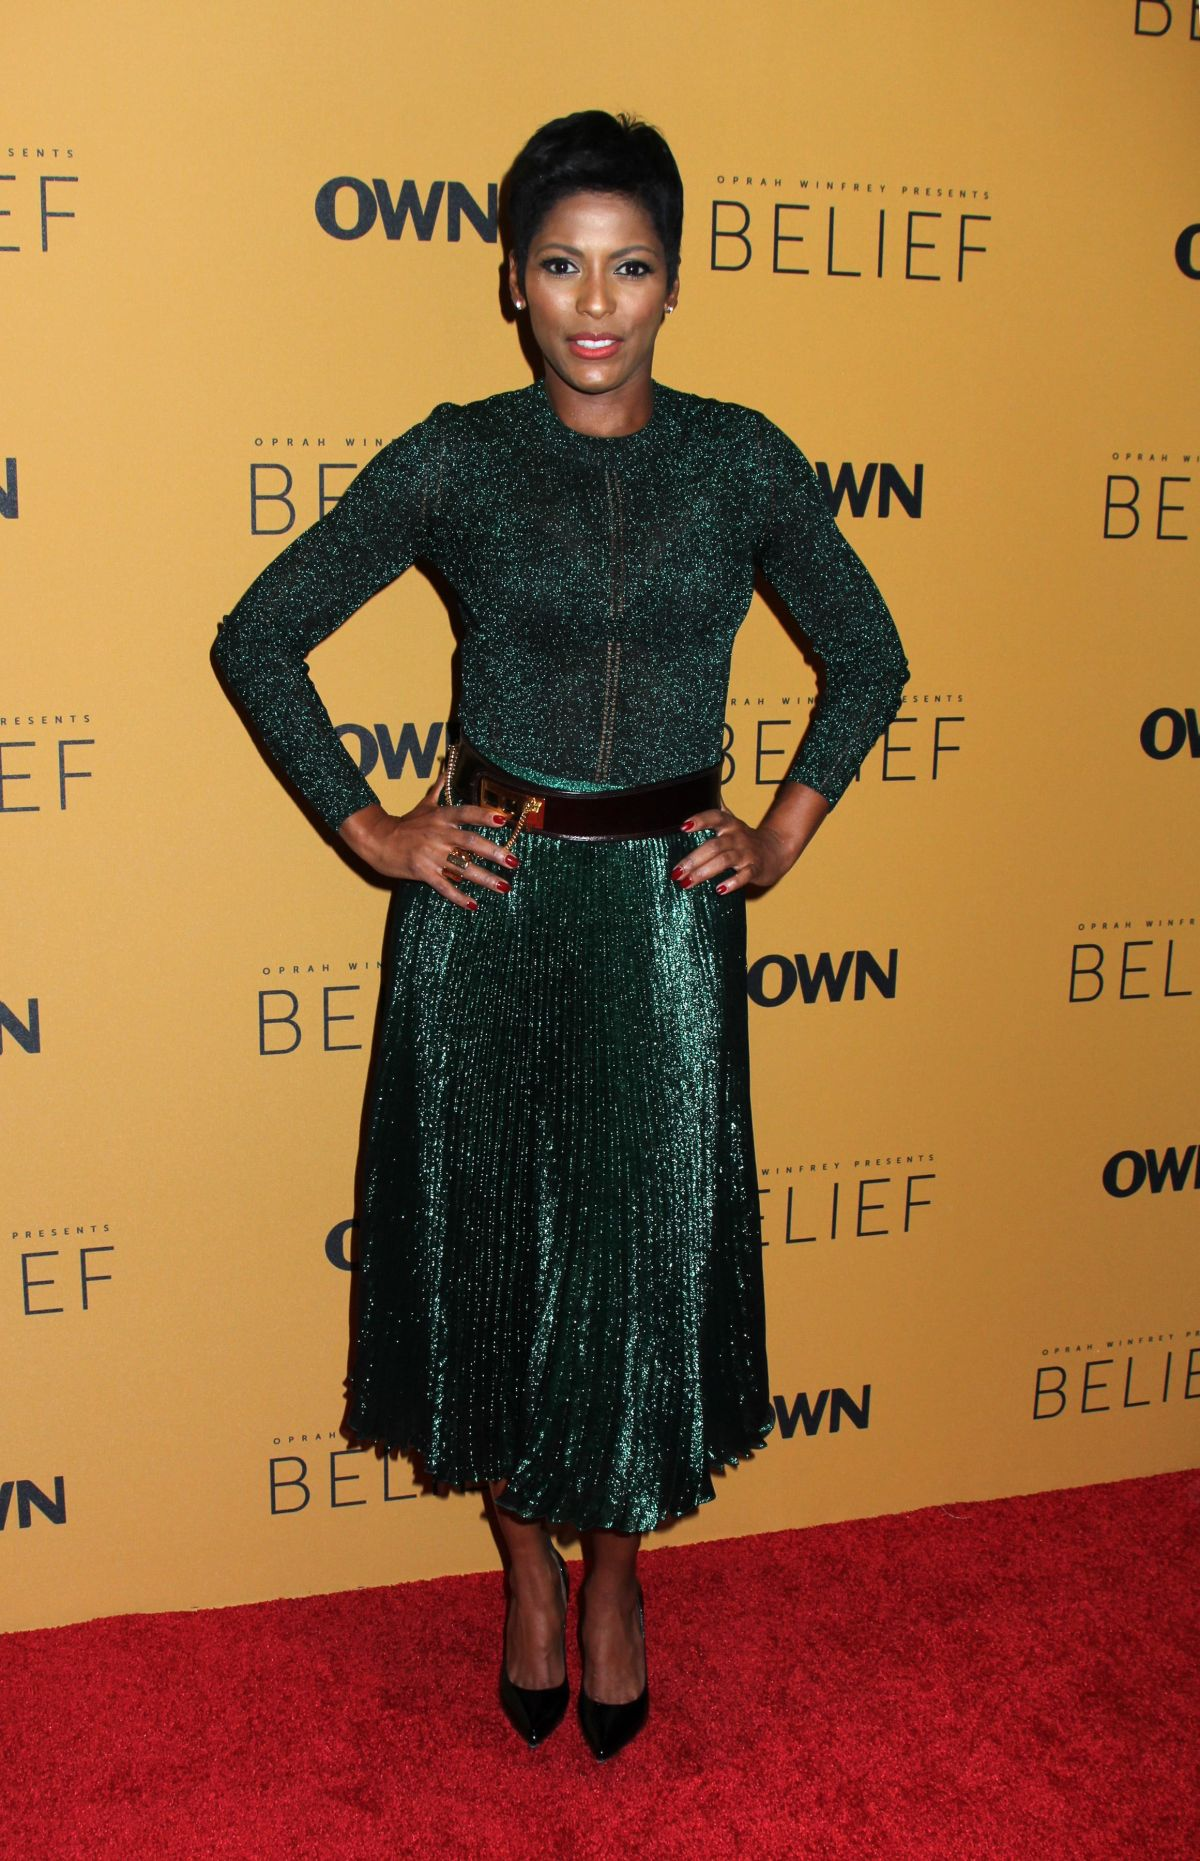 TAMRON HALL at Belief Premiere in New York 10/14/2015